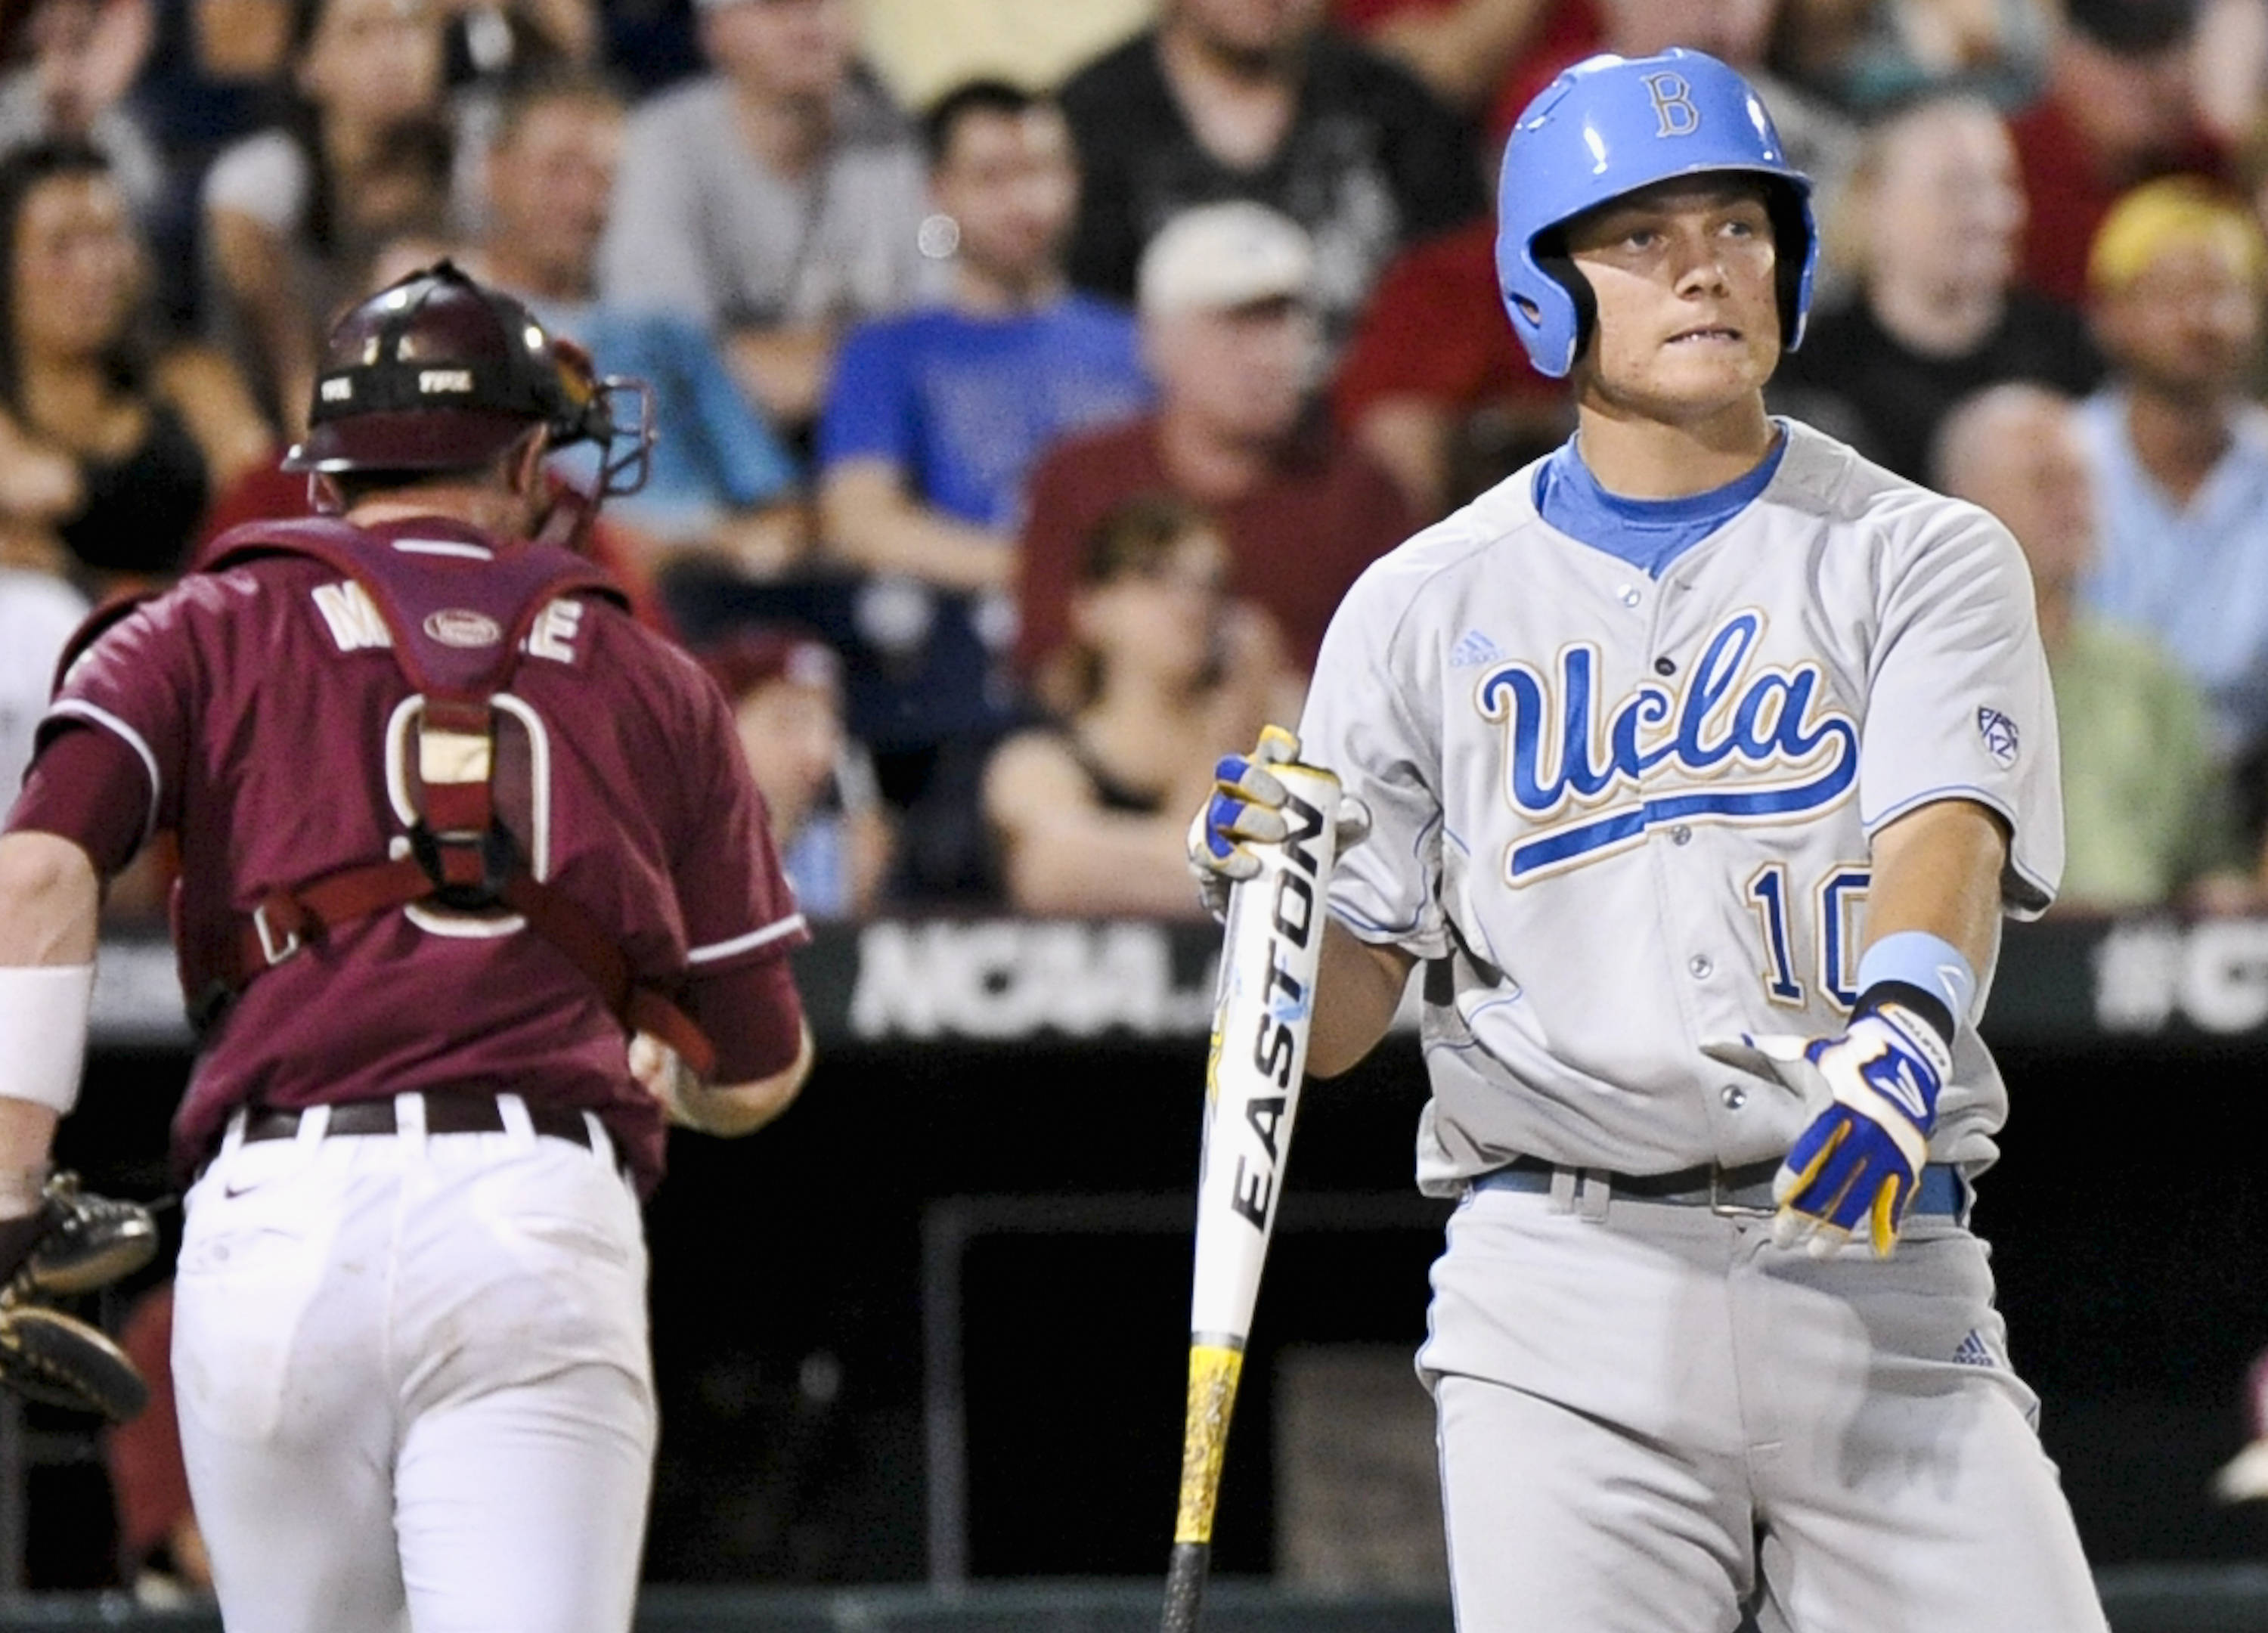 UCLA's Pat Valaika, right, reacts after Florida State pitcher Scott Sitz strikes him out to end the inning with bases loaded, in the sixth inning. (AP Photo/Ted Kirk)